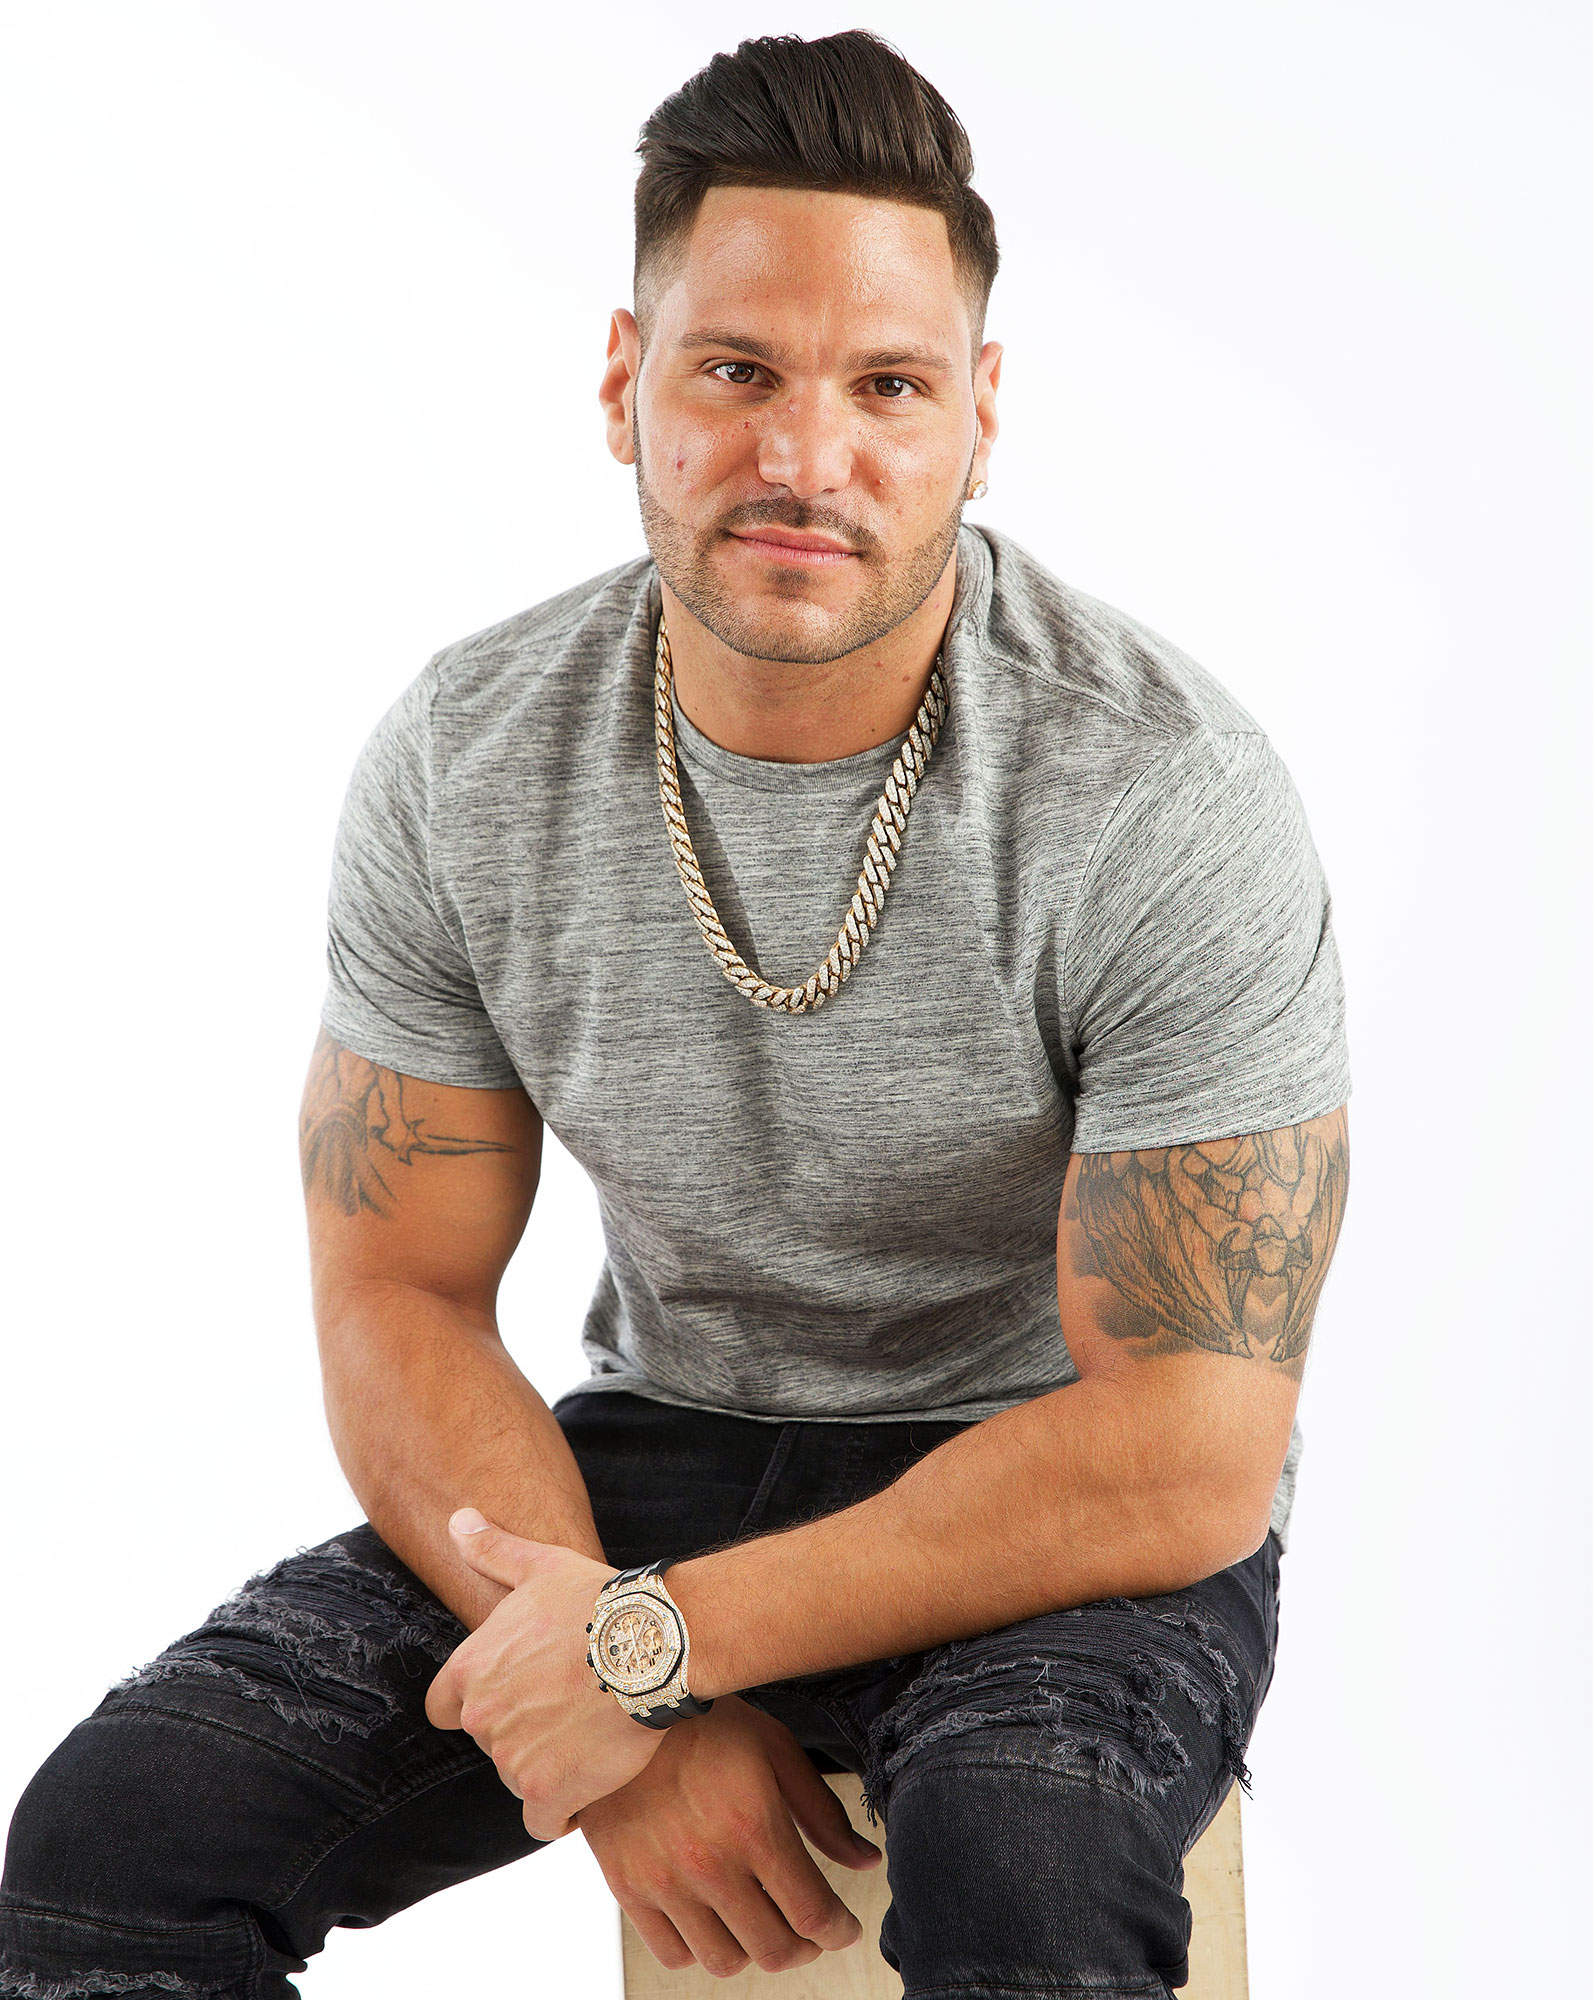 Ronnie Ortiz-Magro Opened Up About His Sobriety Hours Before His Arrest